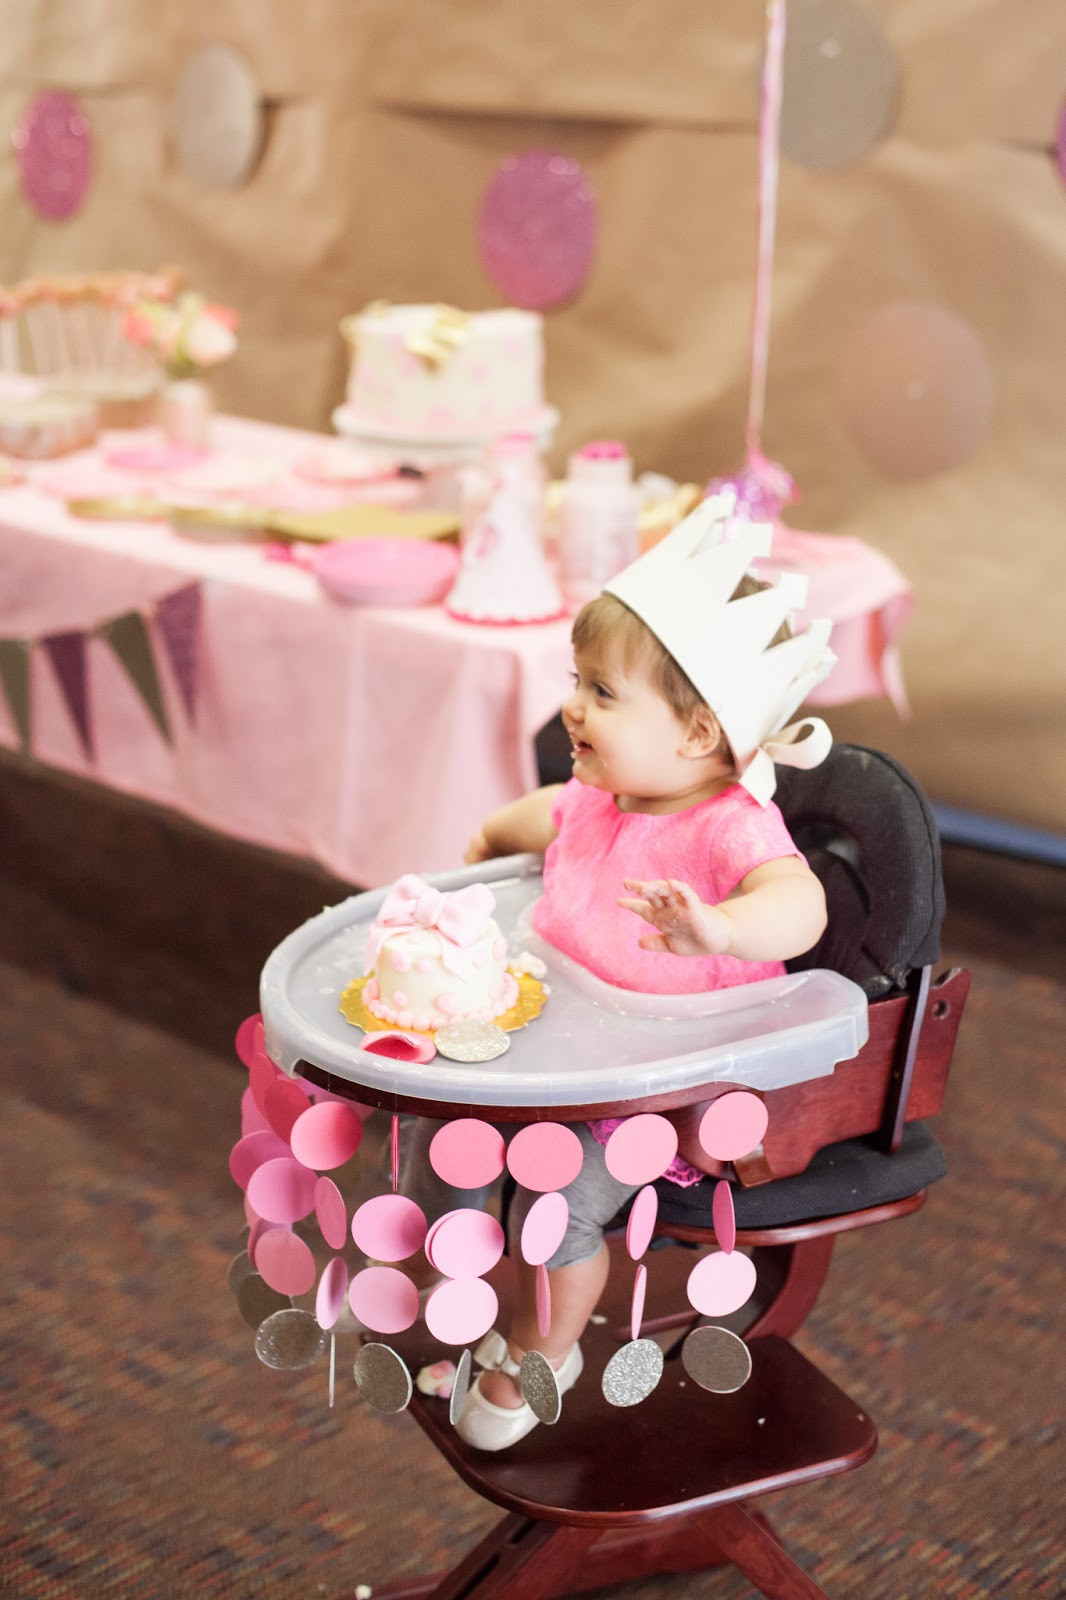 Best ideas about 1st Birthday Party . Save or Pin Nat your average girl 1st birthday party decor Now.